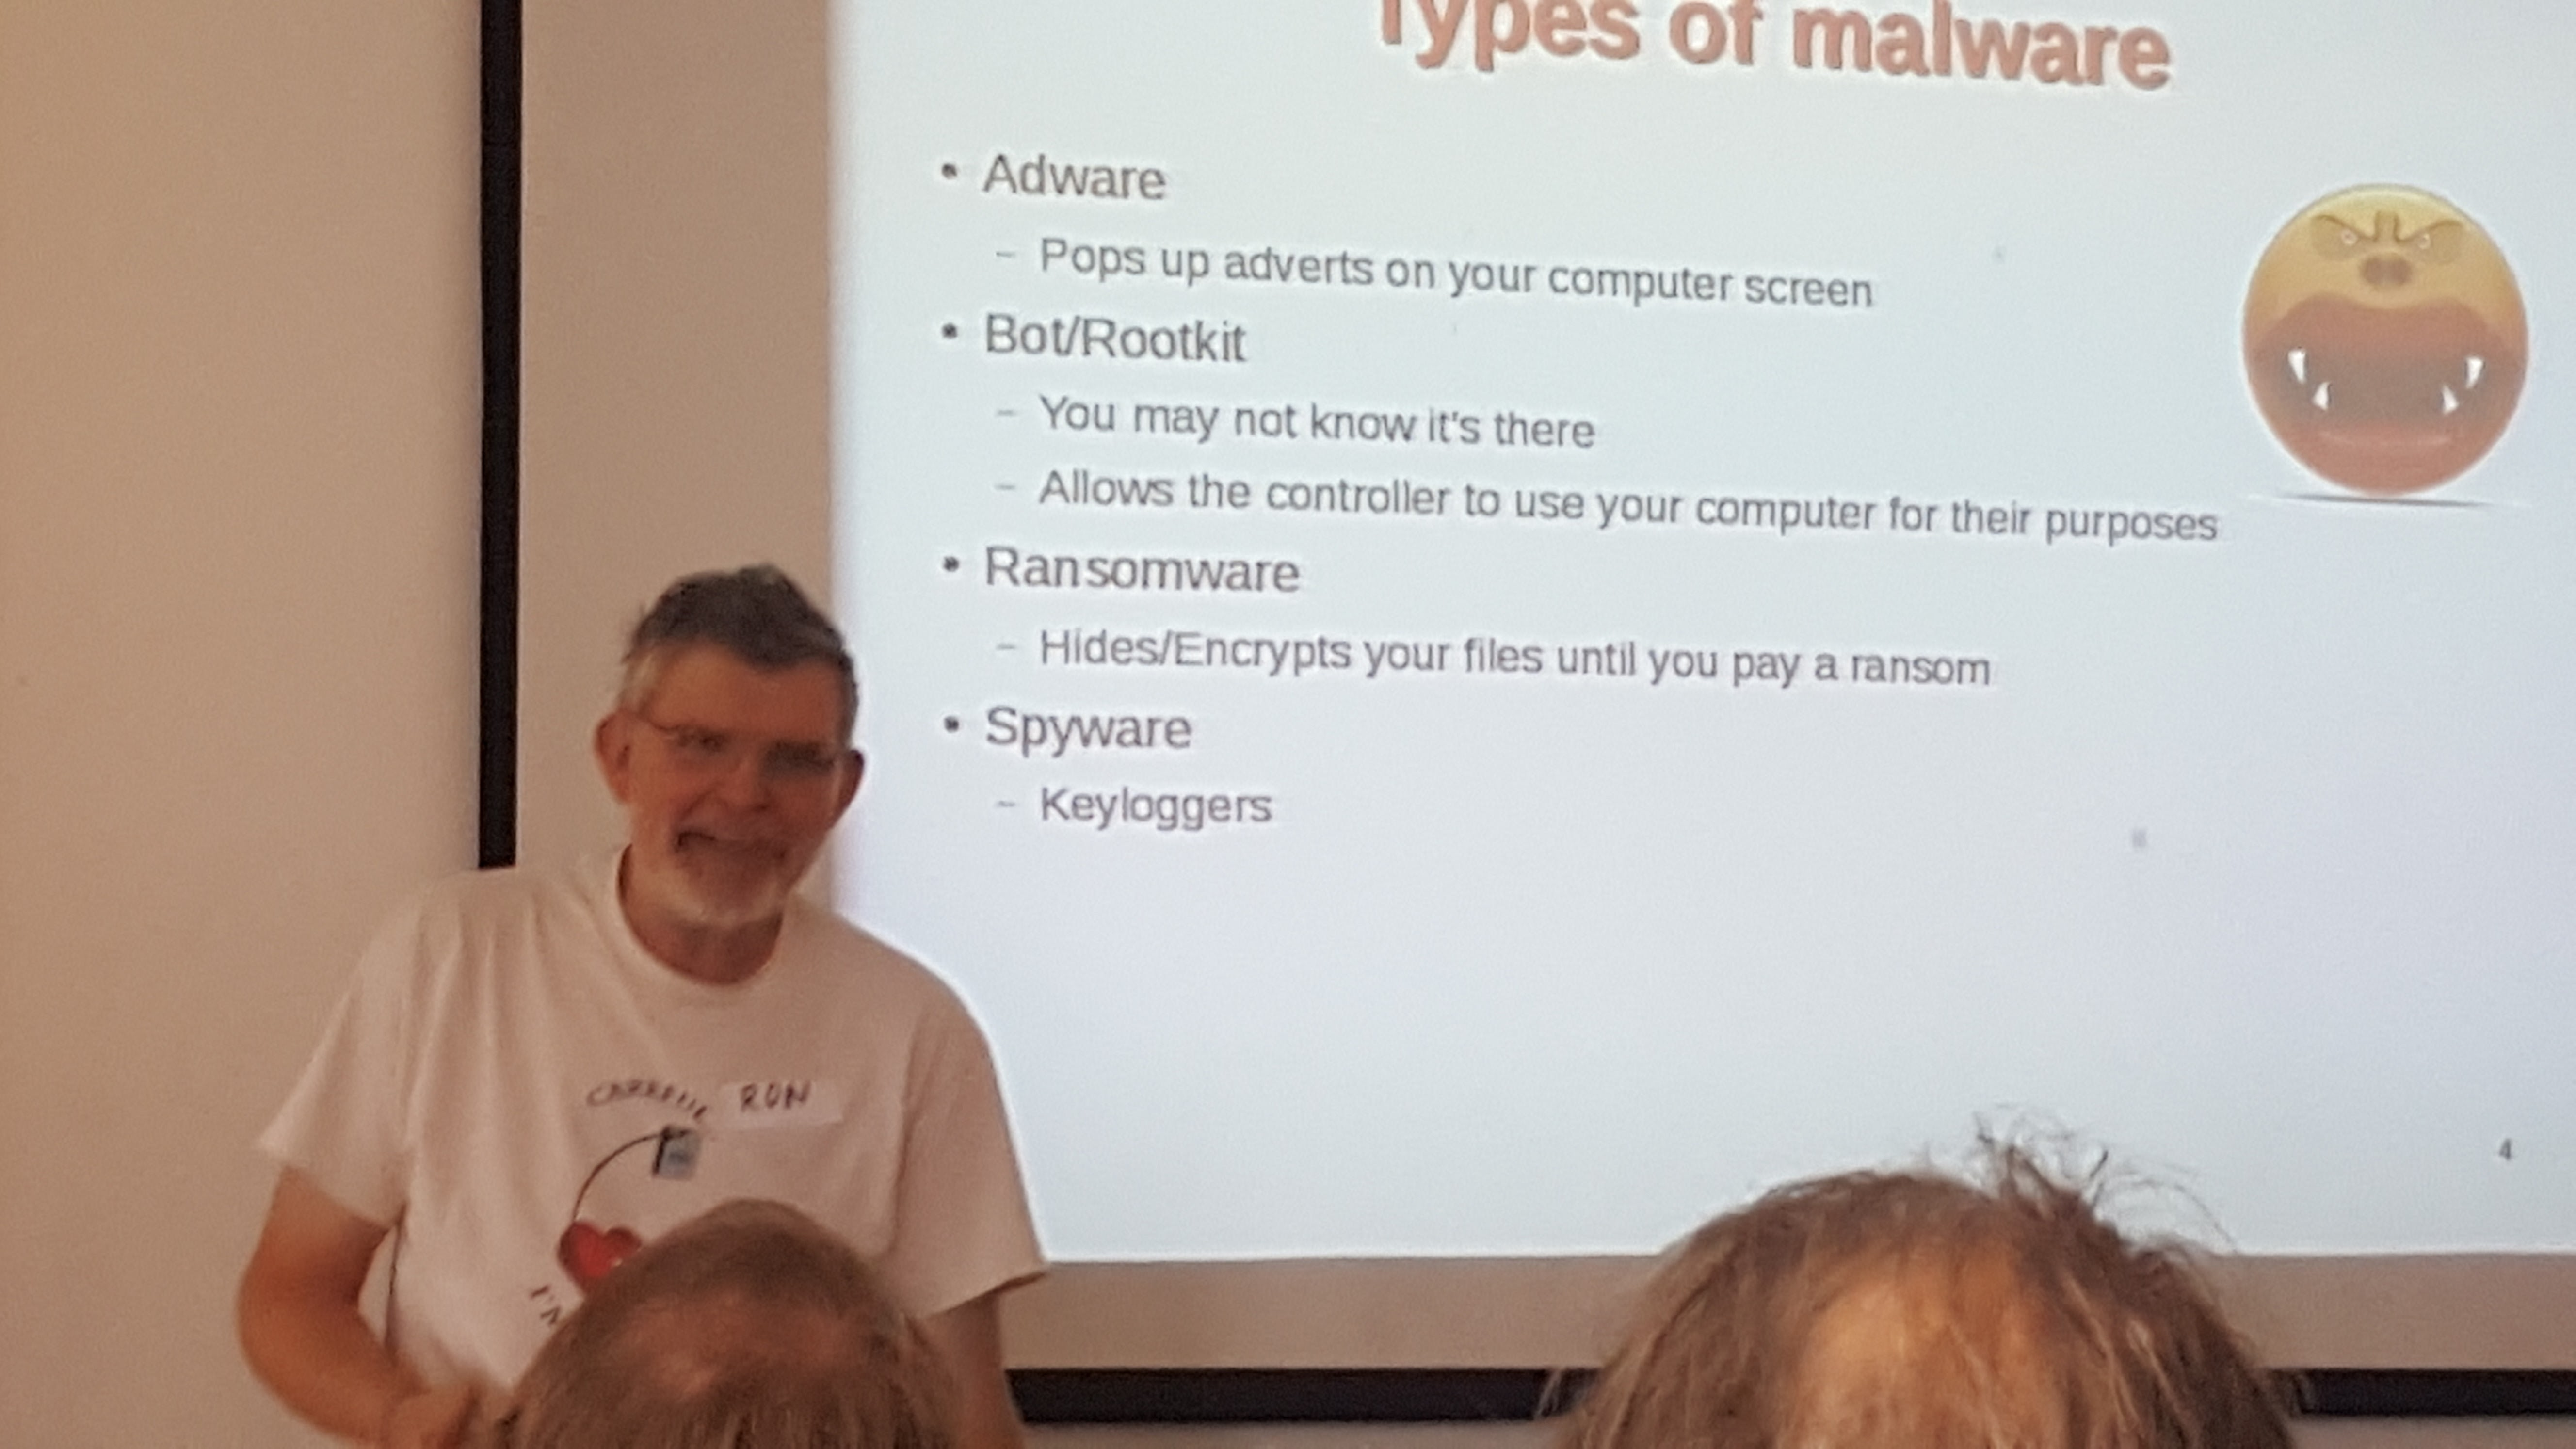 A good introductory talk to Malware